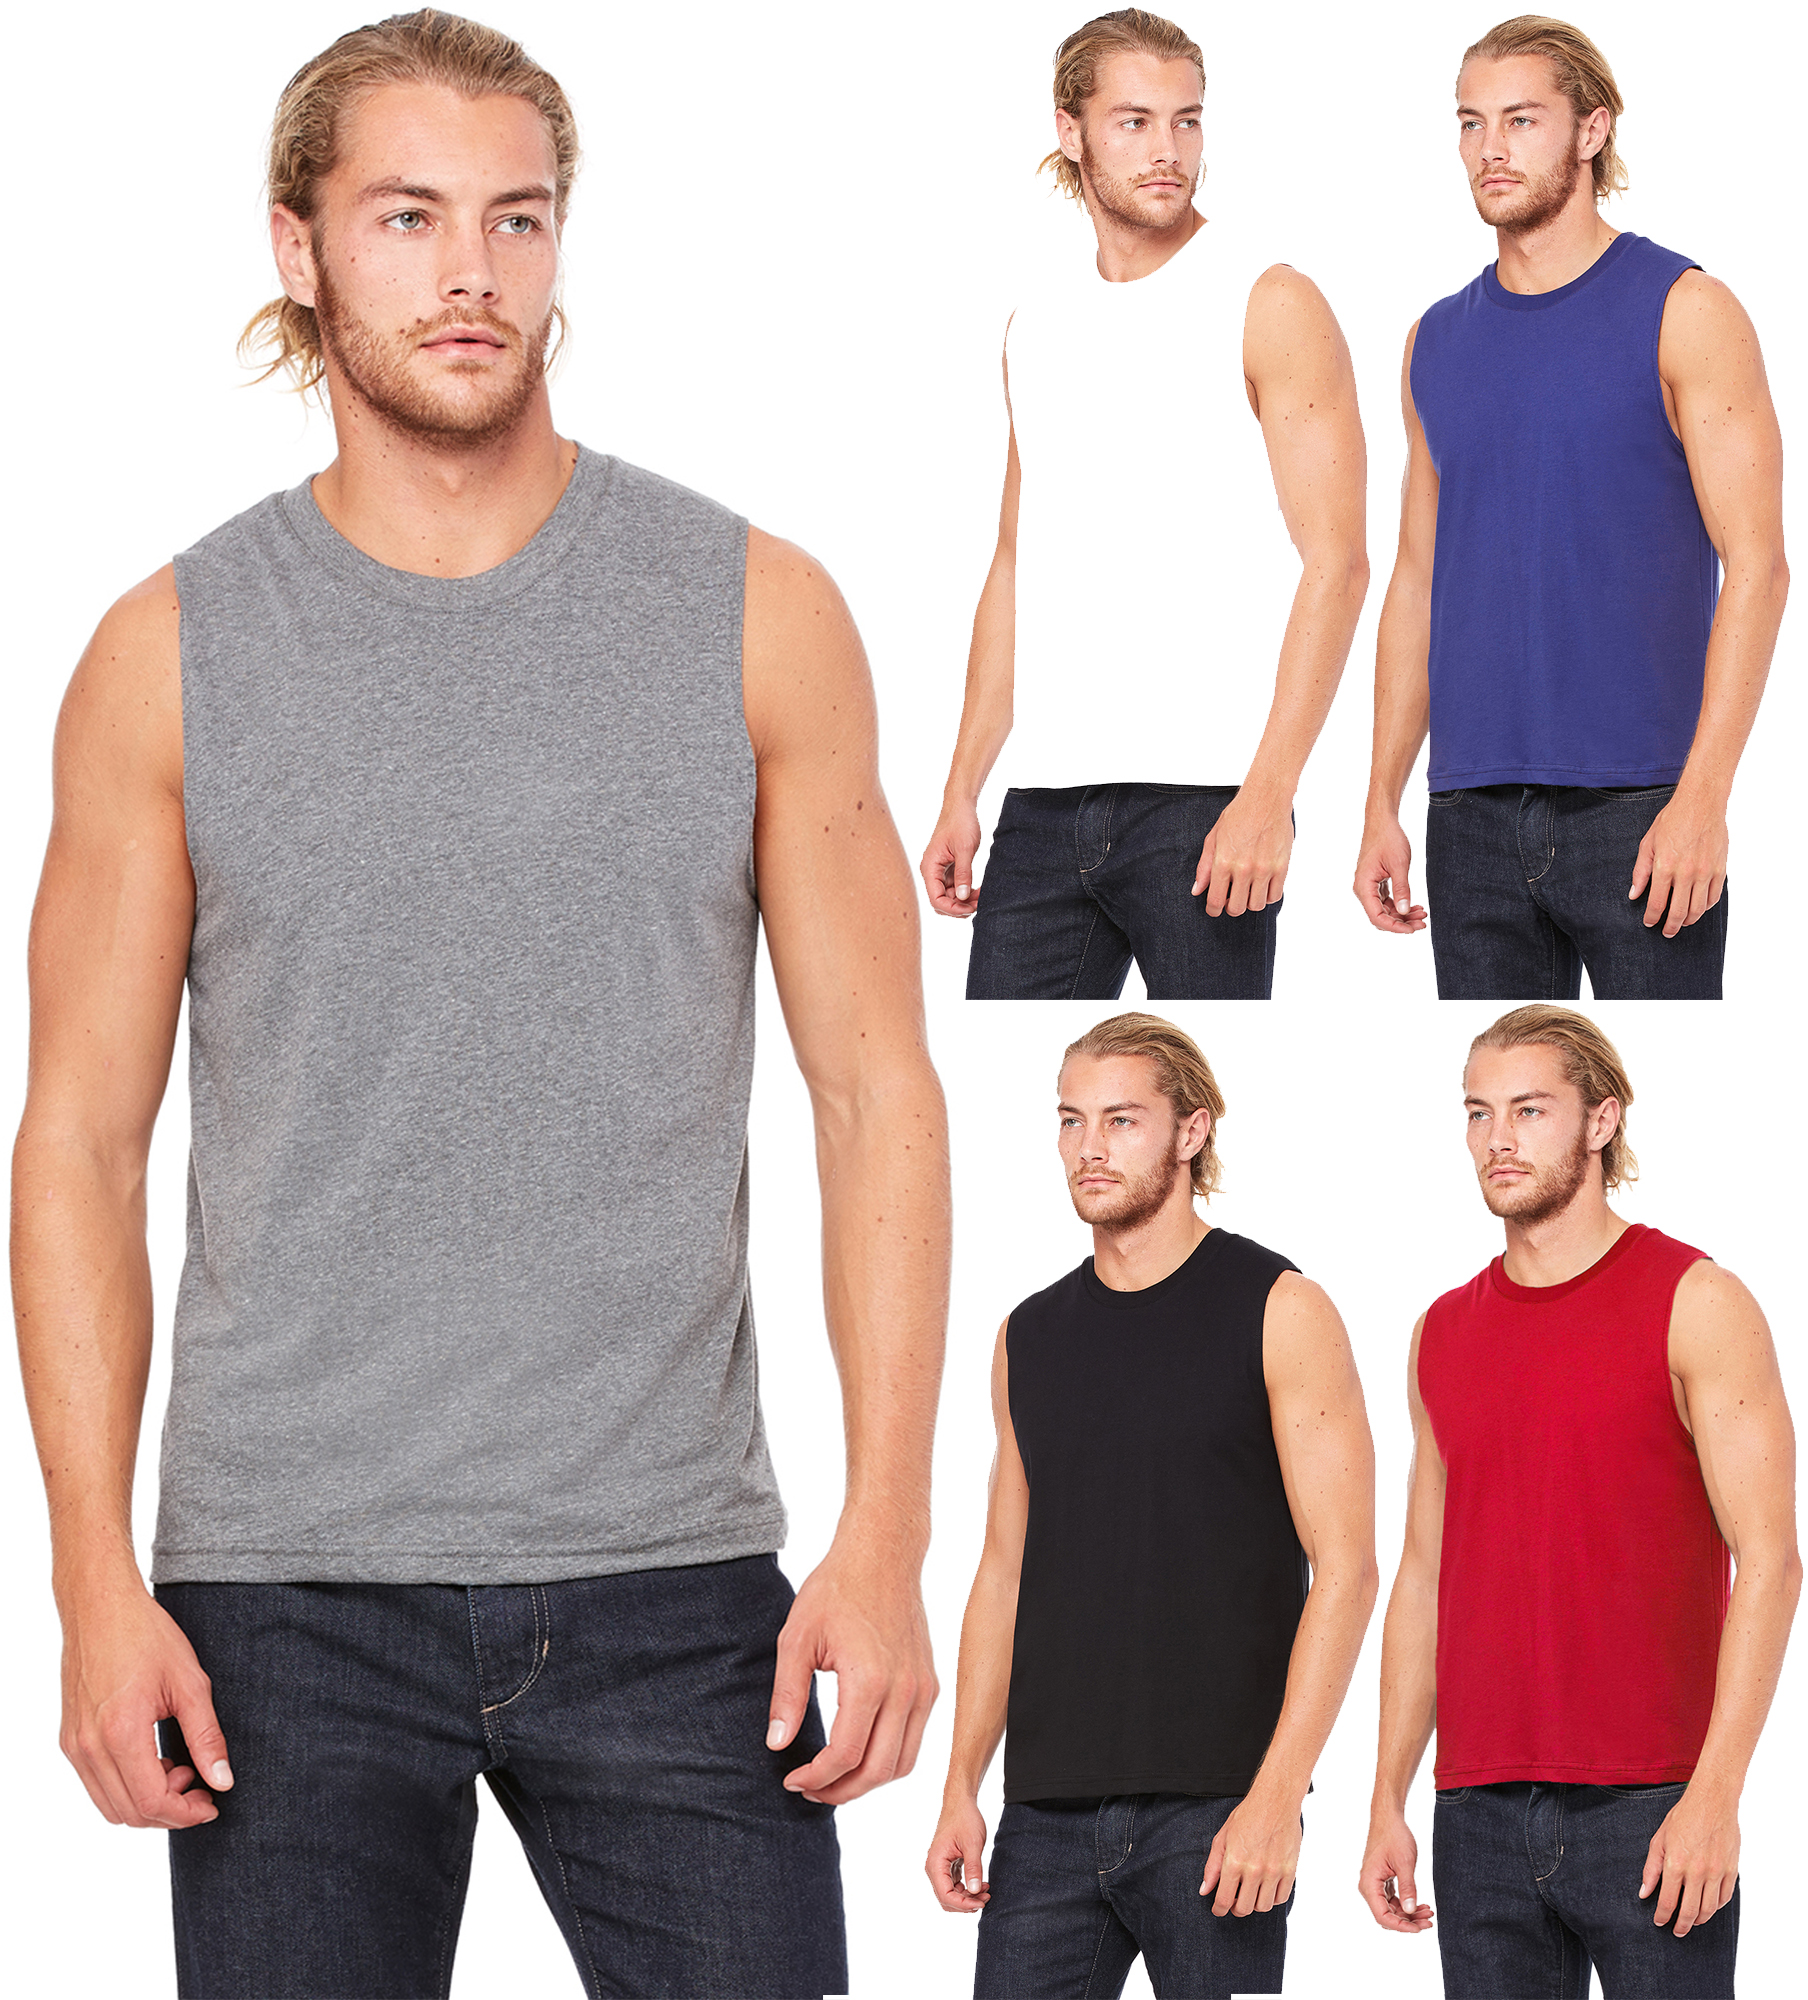 72a02c31b3843 Ma Croix - Men s Athletic Sleeveless Tank Top T Shirts - Walmart.com